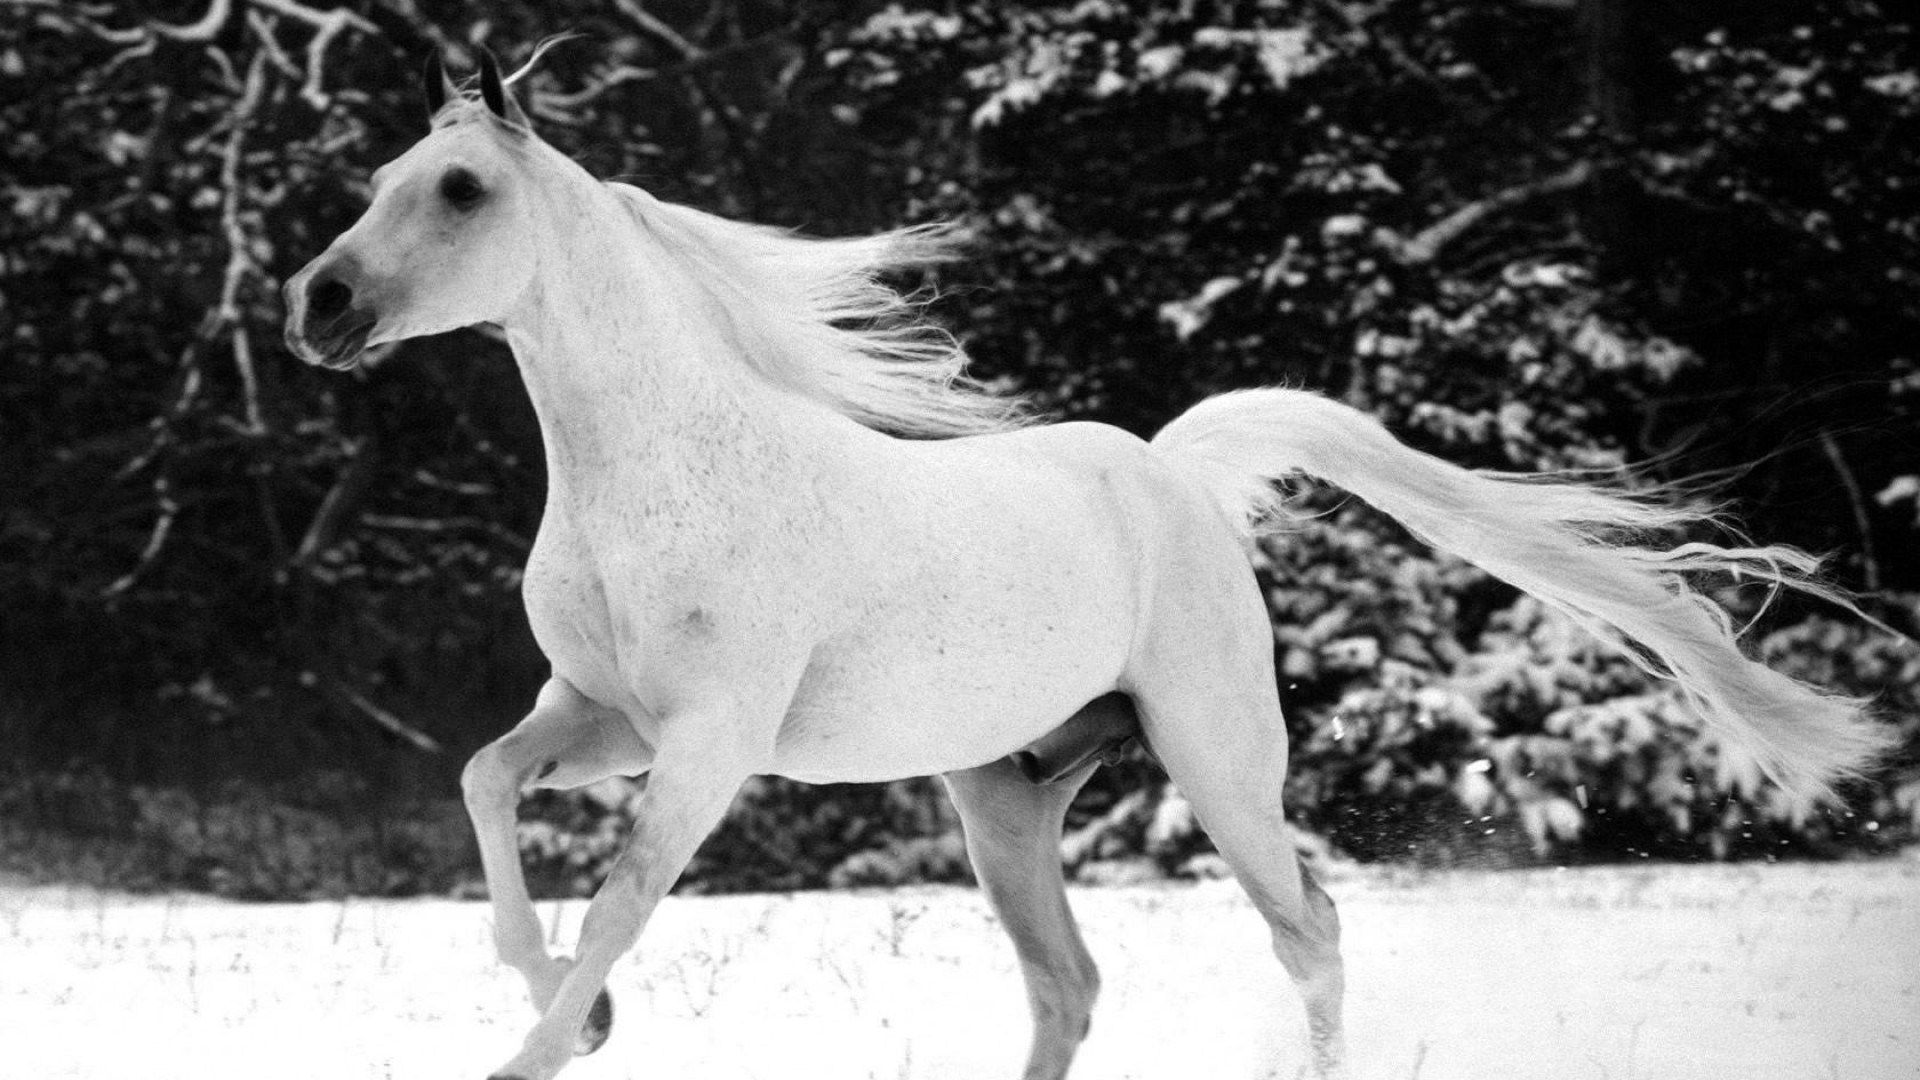 Black And White Horse Wallpapers Top Free Black And White Horse Backgrounds Wallpaperaccess